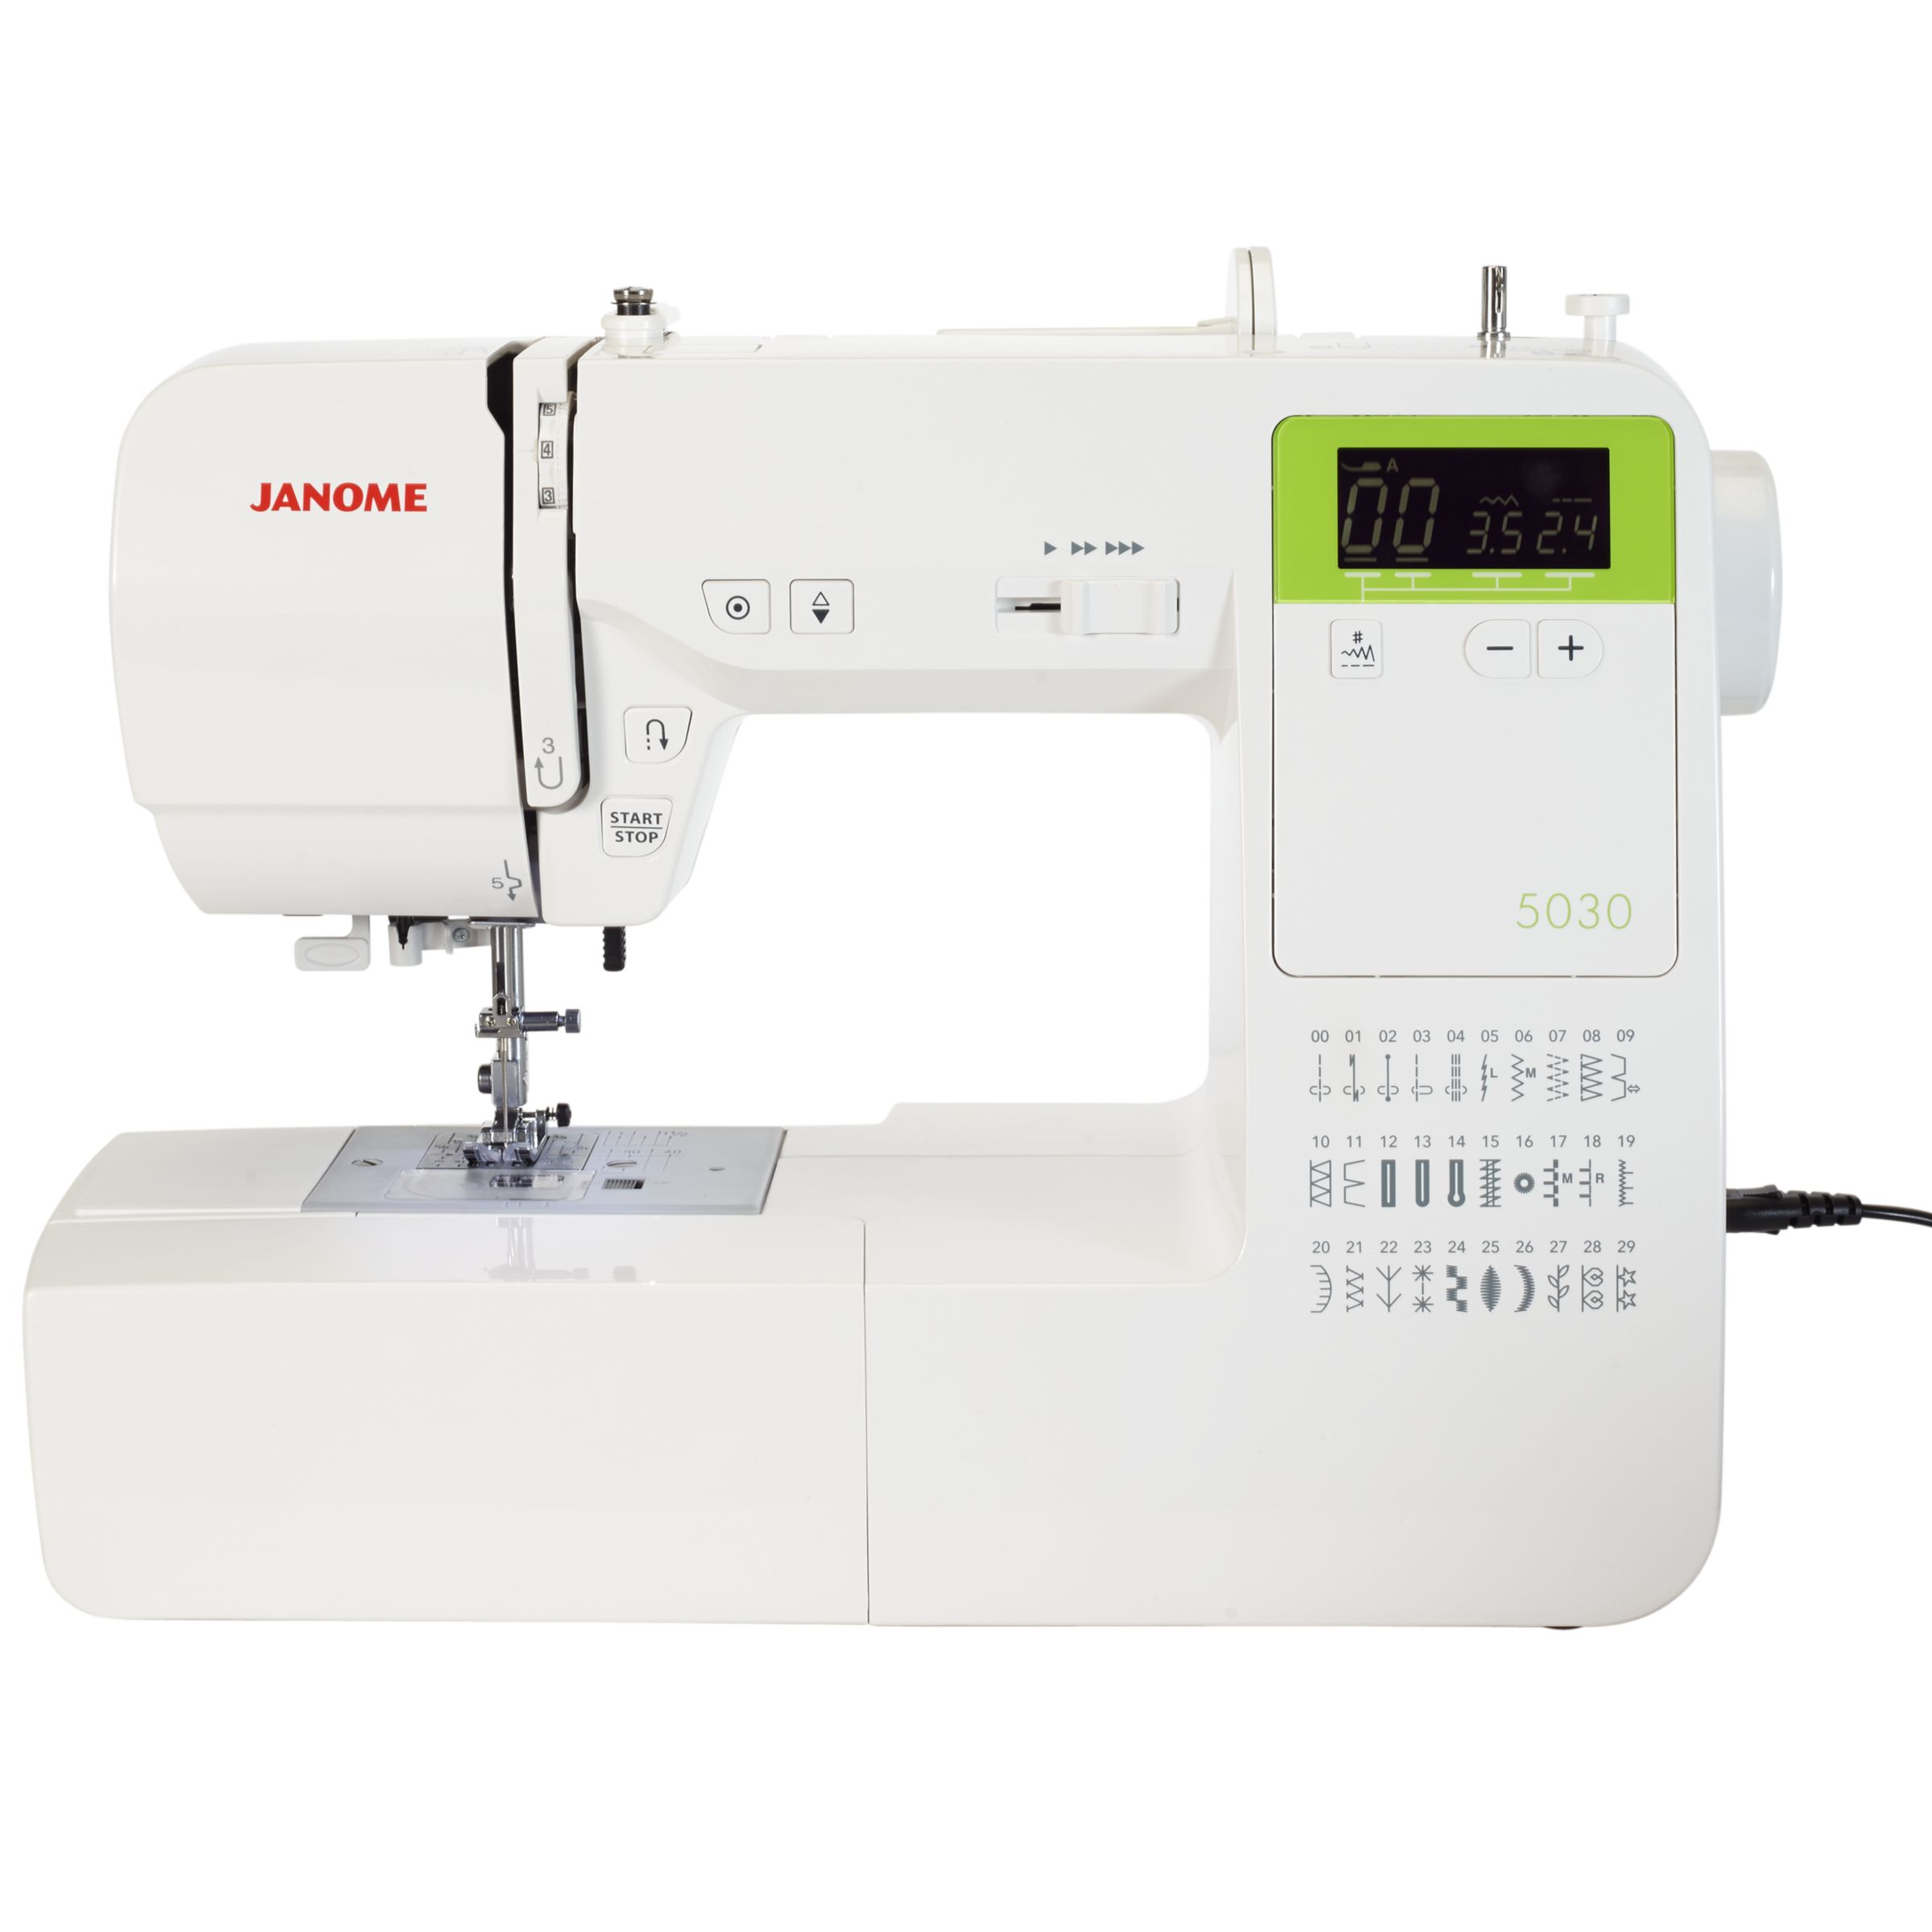 janome 5030 sewing machine white at john lewis partners rh johnlewis com Janome Embroidery Design Library Janome 350E Tutorials